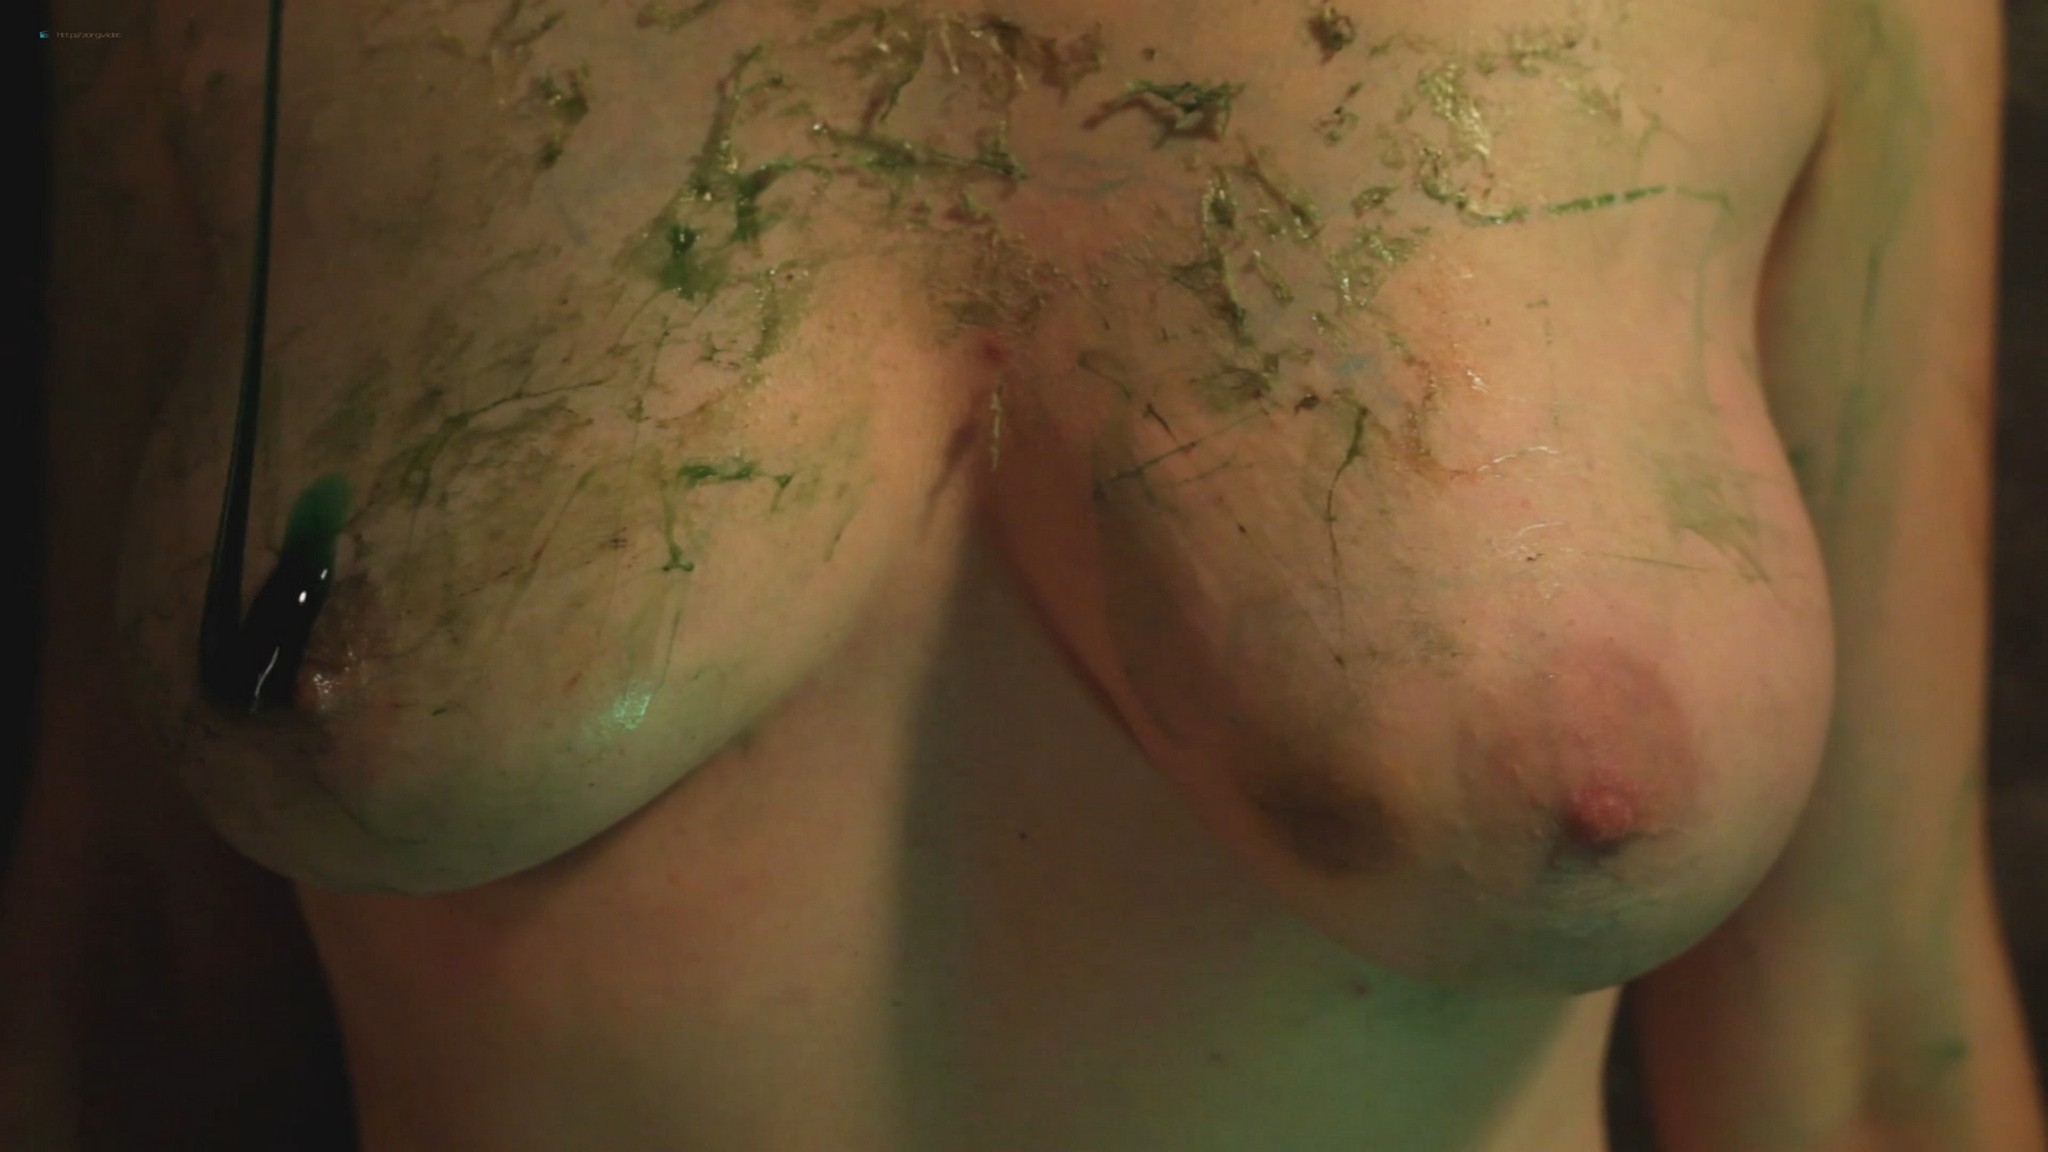 Asta Paredes nude sex Catherine Corcoran and others nude full frontal - Return to Return to Nuke 'Em High Aka Vol. 2 (2017) HD 1080p BluRay (3)